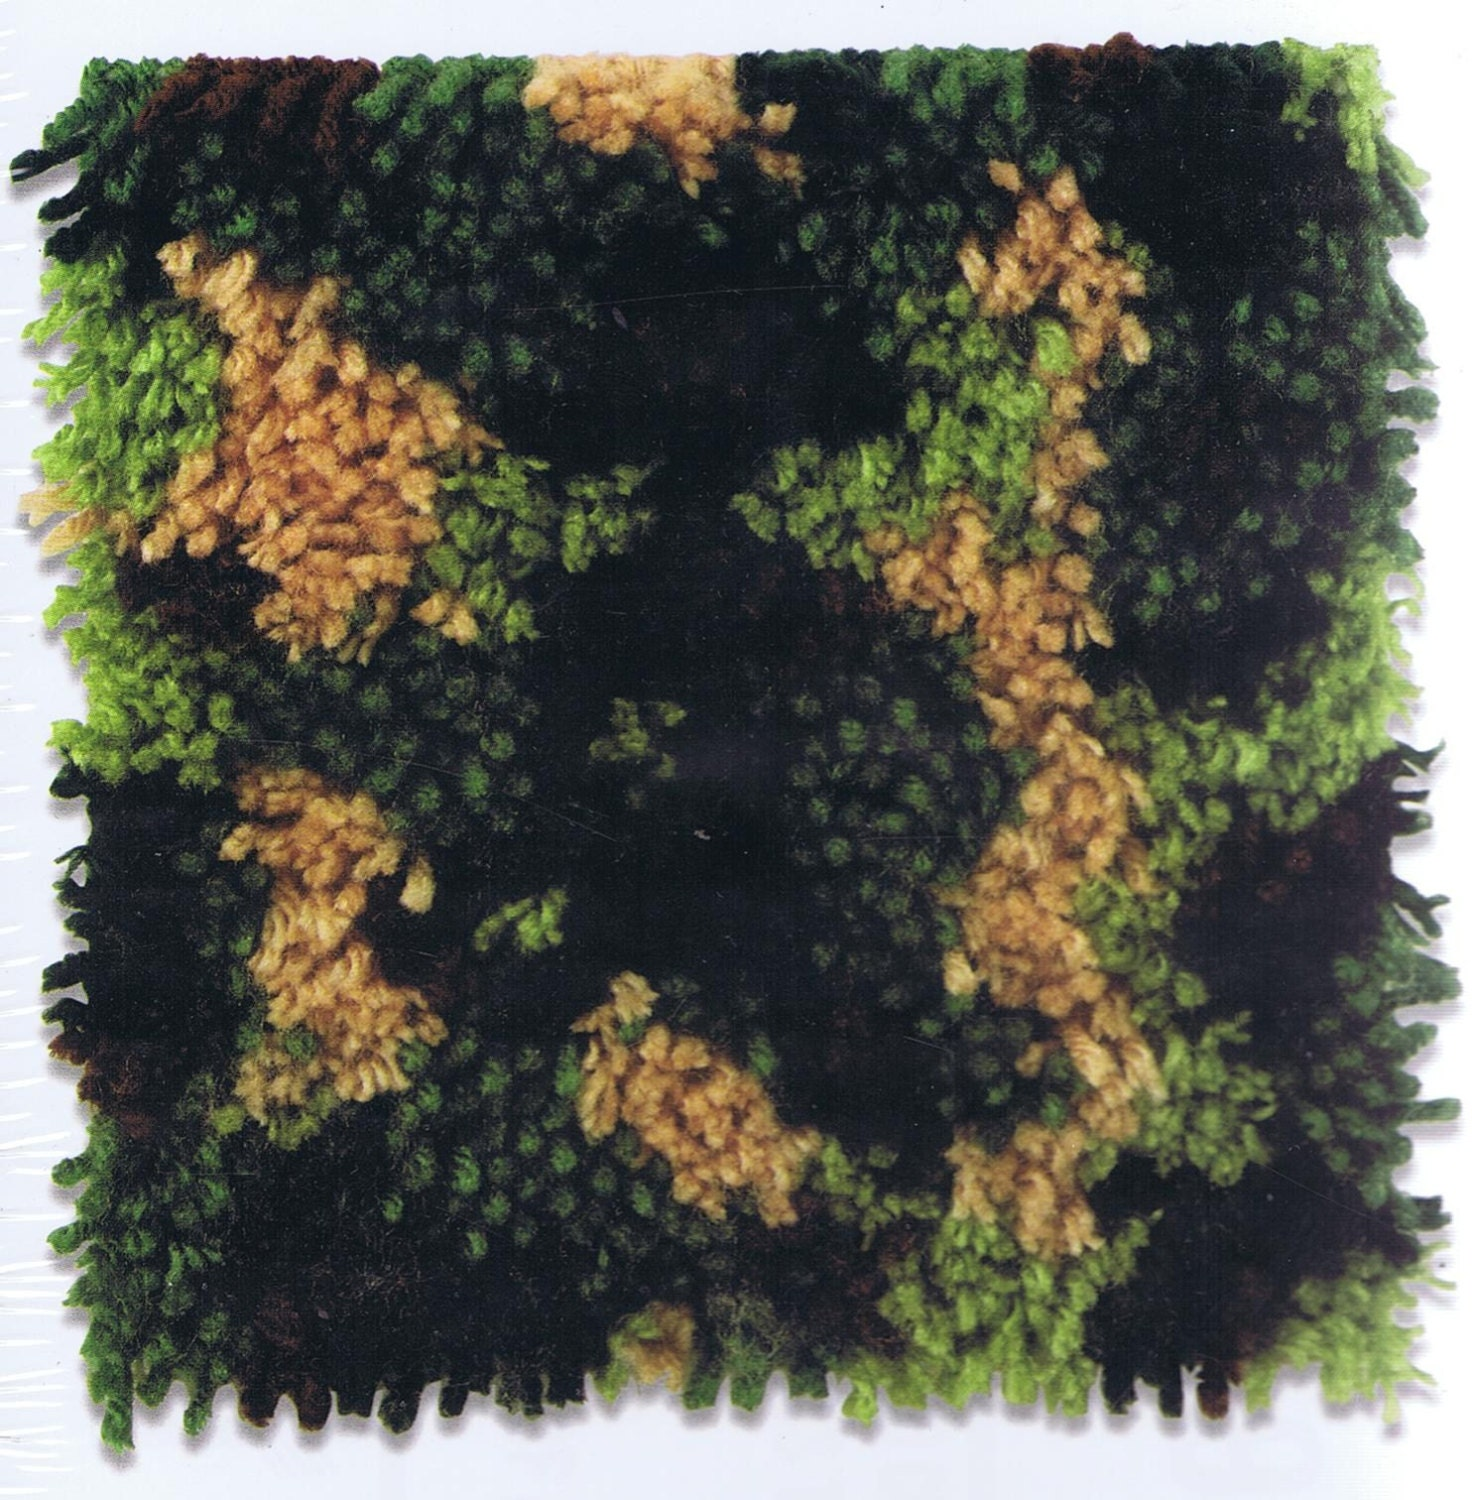 Army Camouflage Latch Hook Rug Kit 8 Inches Square